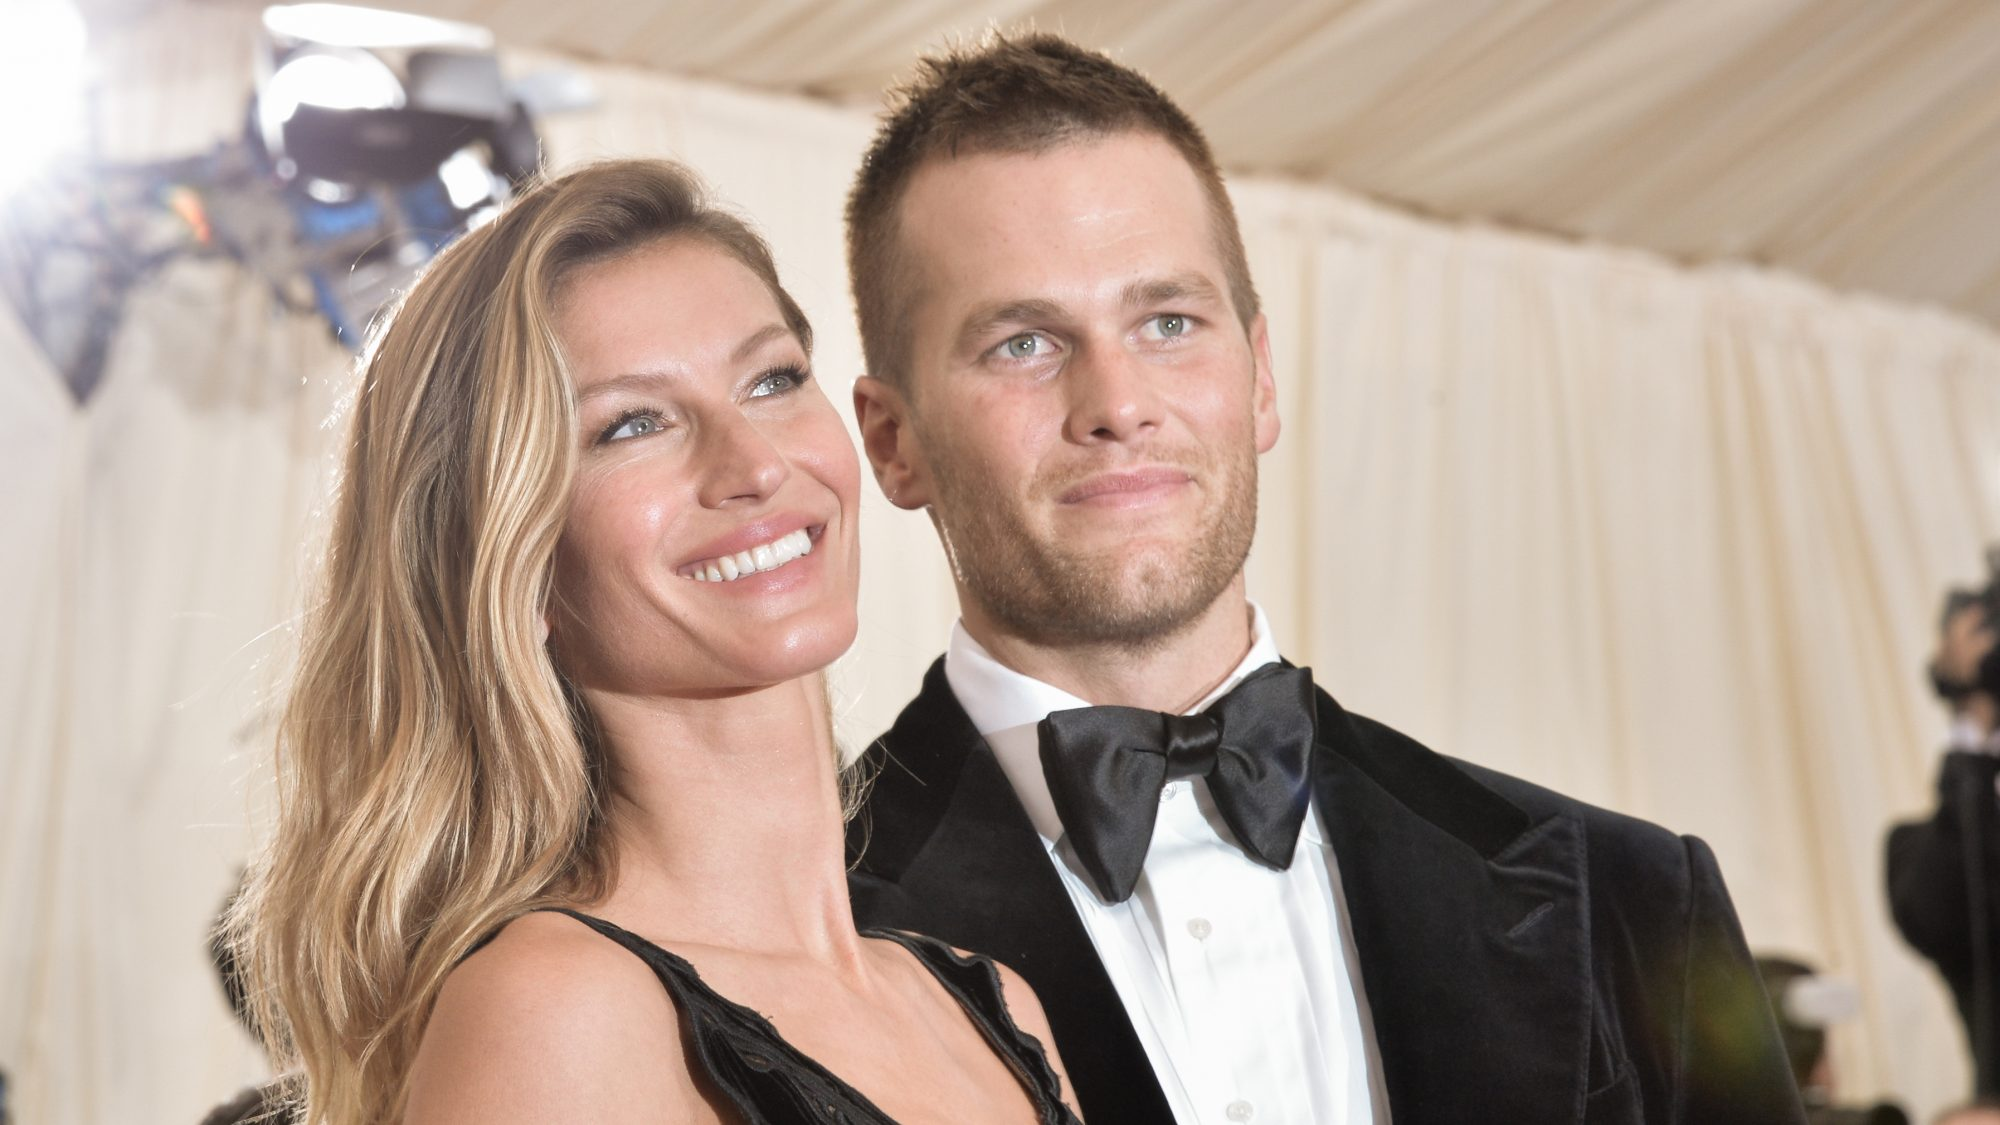 tom-brady-gisele-bundchen-FT-BLOG0116.jpg